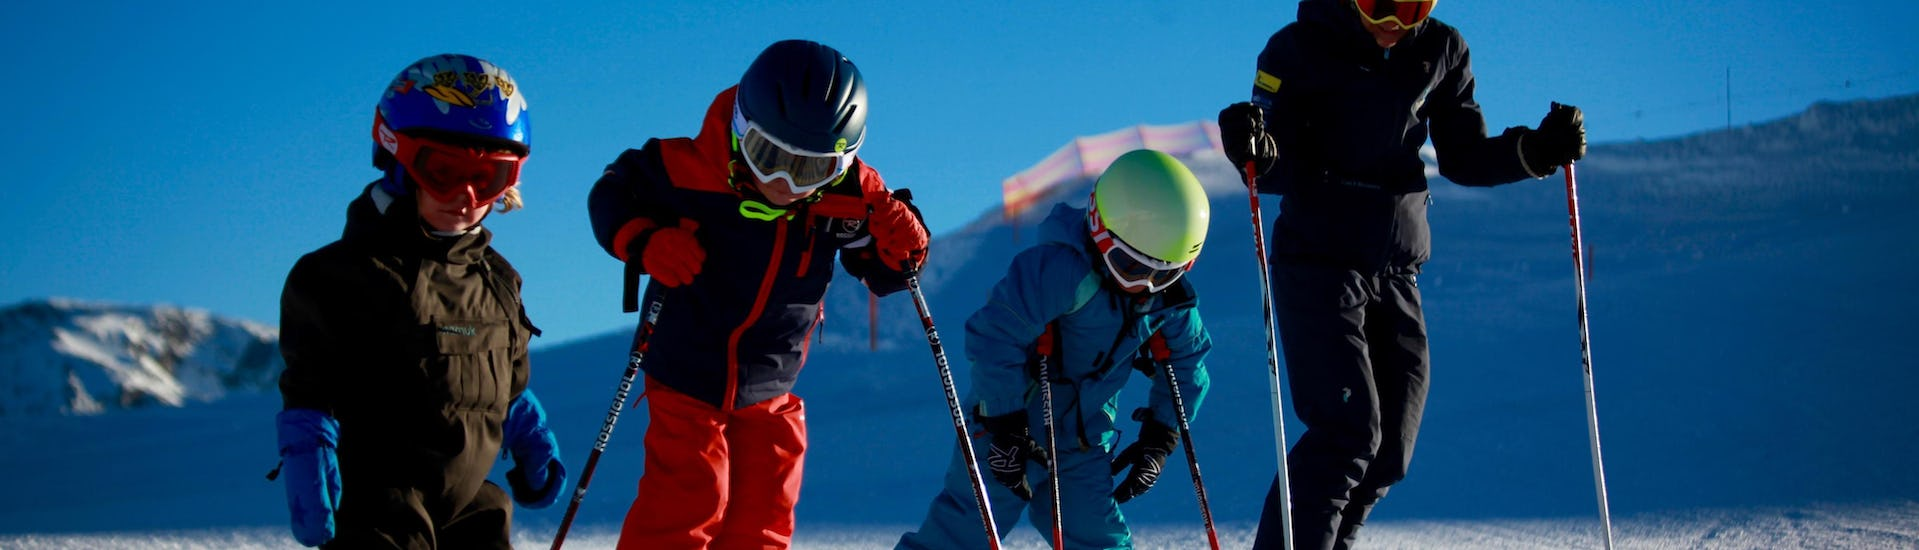 Ski Instructor Private for Kids - Morning - All Ages